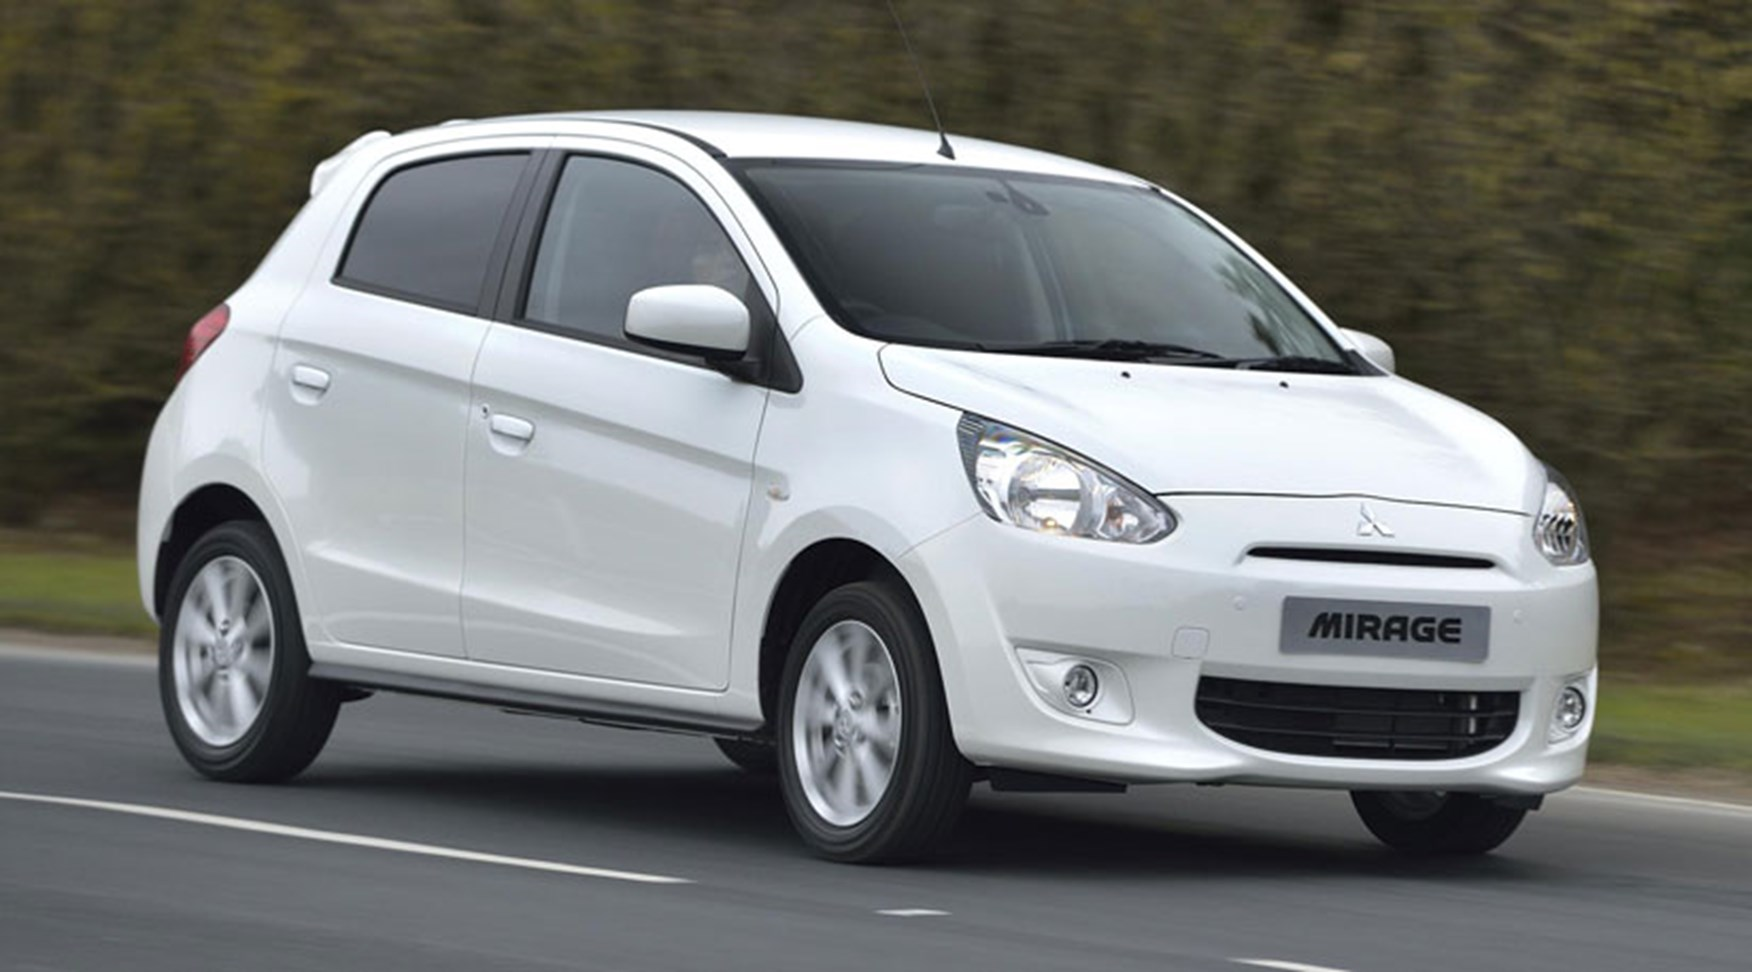 Mitsubishi Mirage 1.2 (2013) review by CAR Magazine